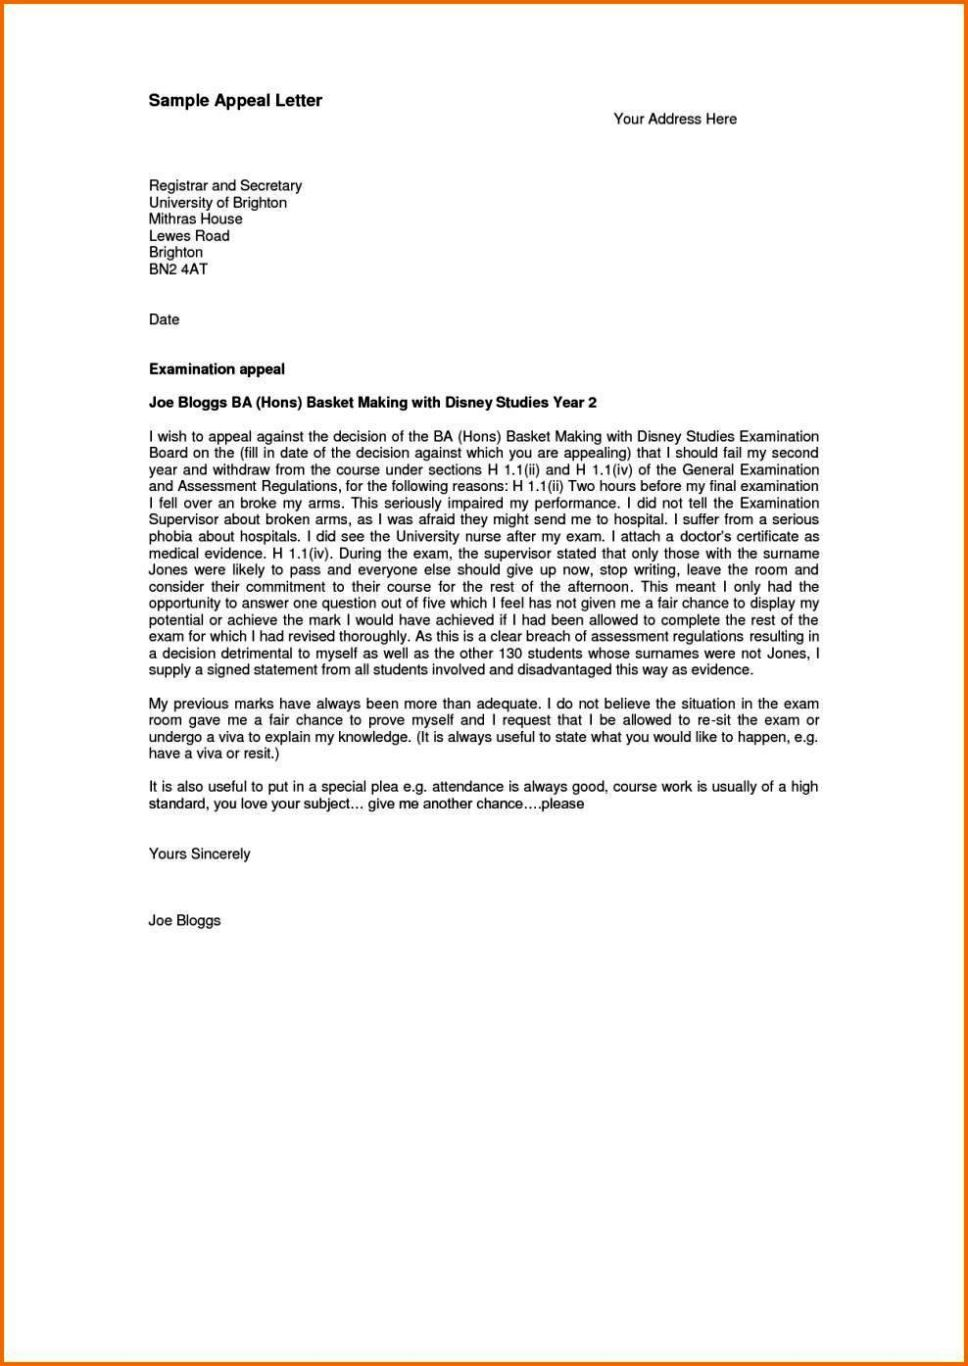 Attendance-Appeal-Letter Template Cover Letter Marketing on for brand, examples great, sales transitioning into, executive example, director strategic, for retail,